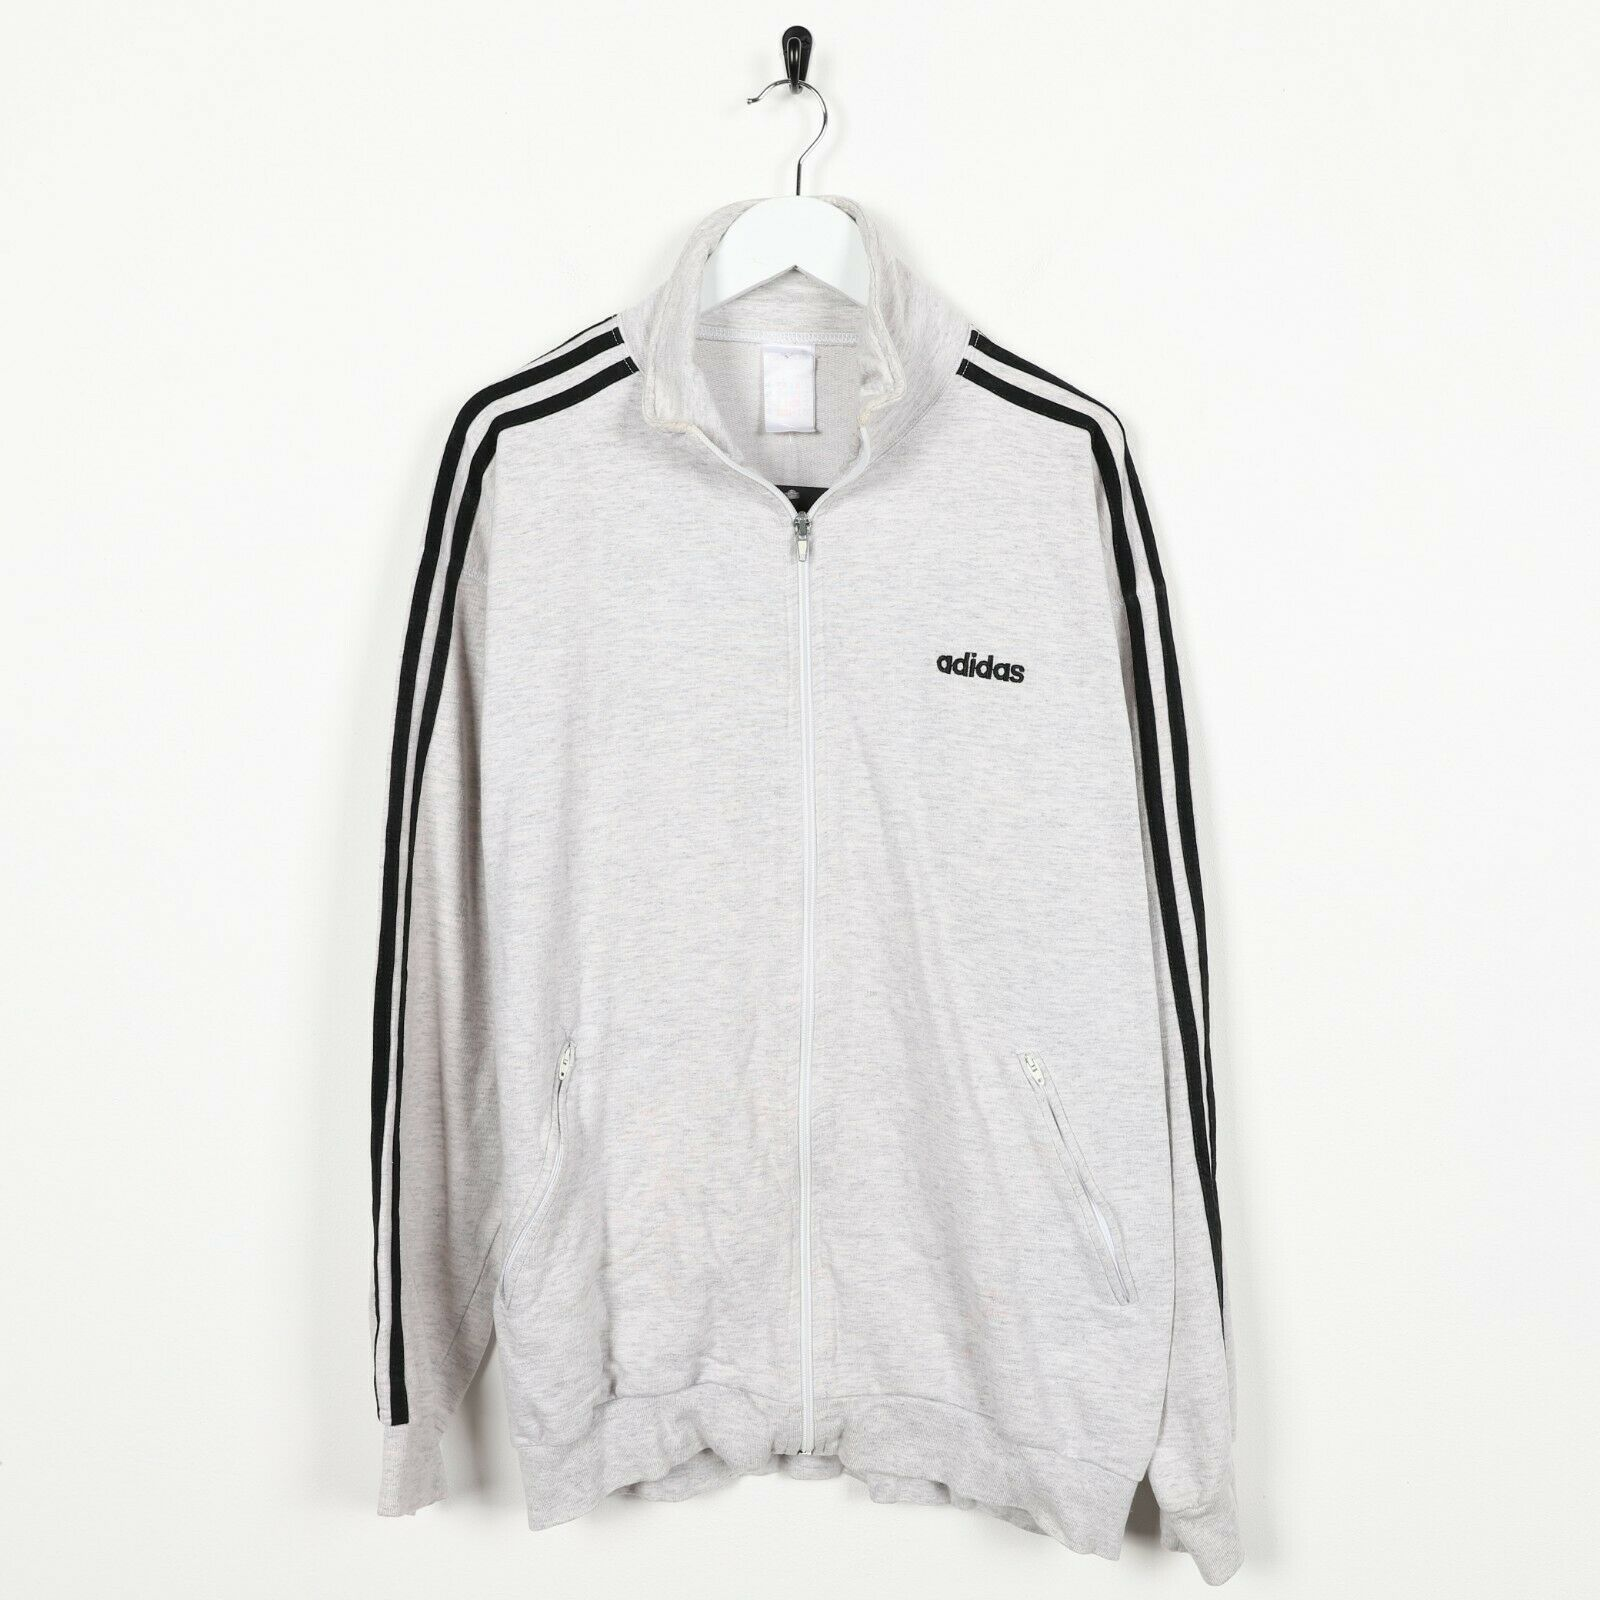 Vintage 80s ADIDAS Zip Up Sweatshirt Jumper Grey | Large L